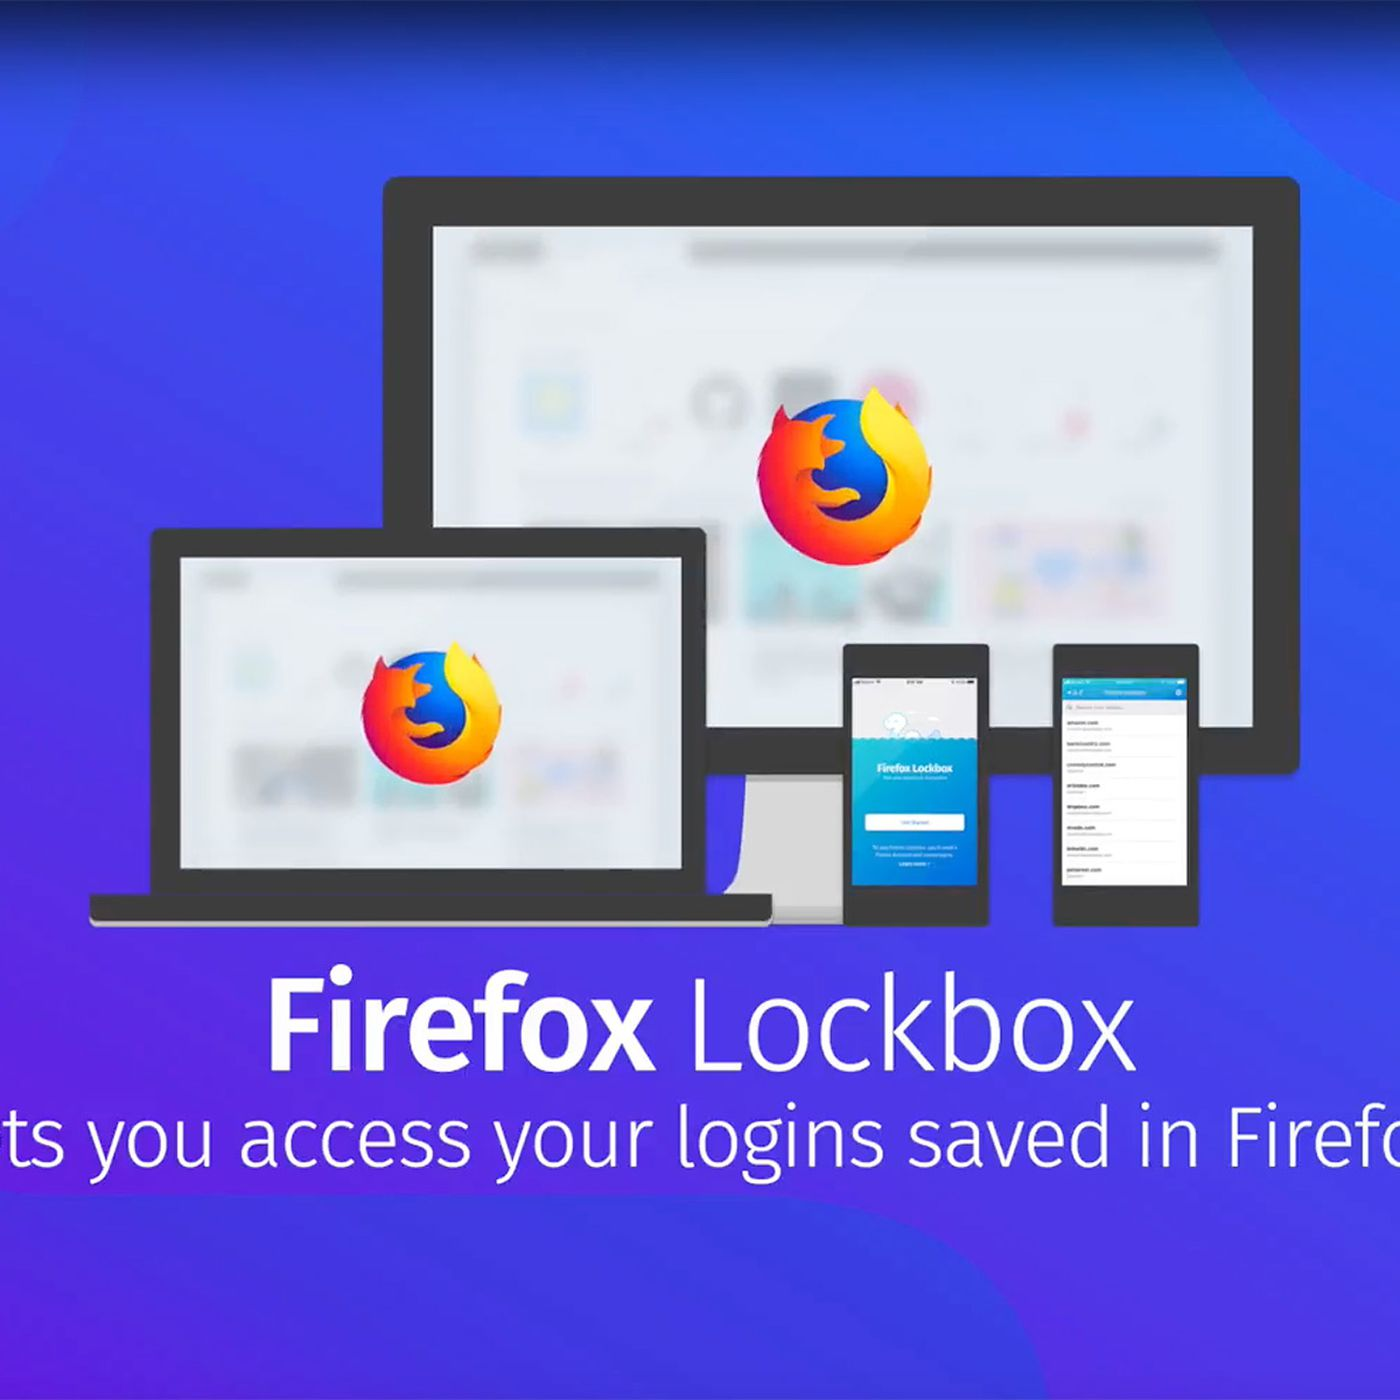 theverge.com - Vlad Savov - Mozilla wants to make Firefox your iOS password manager